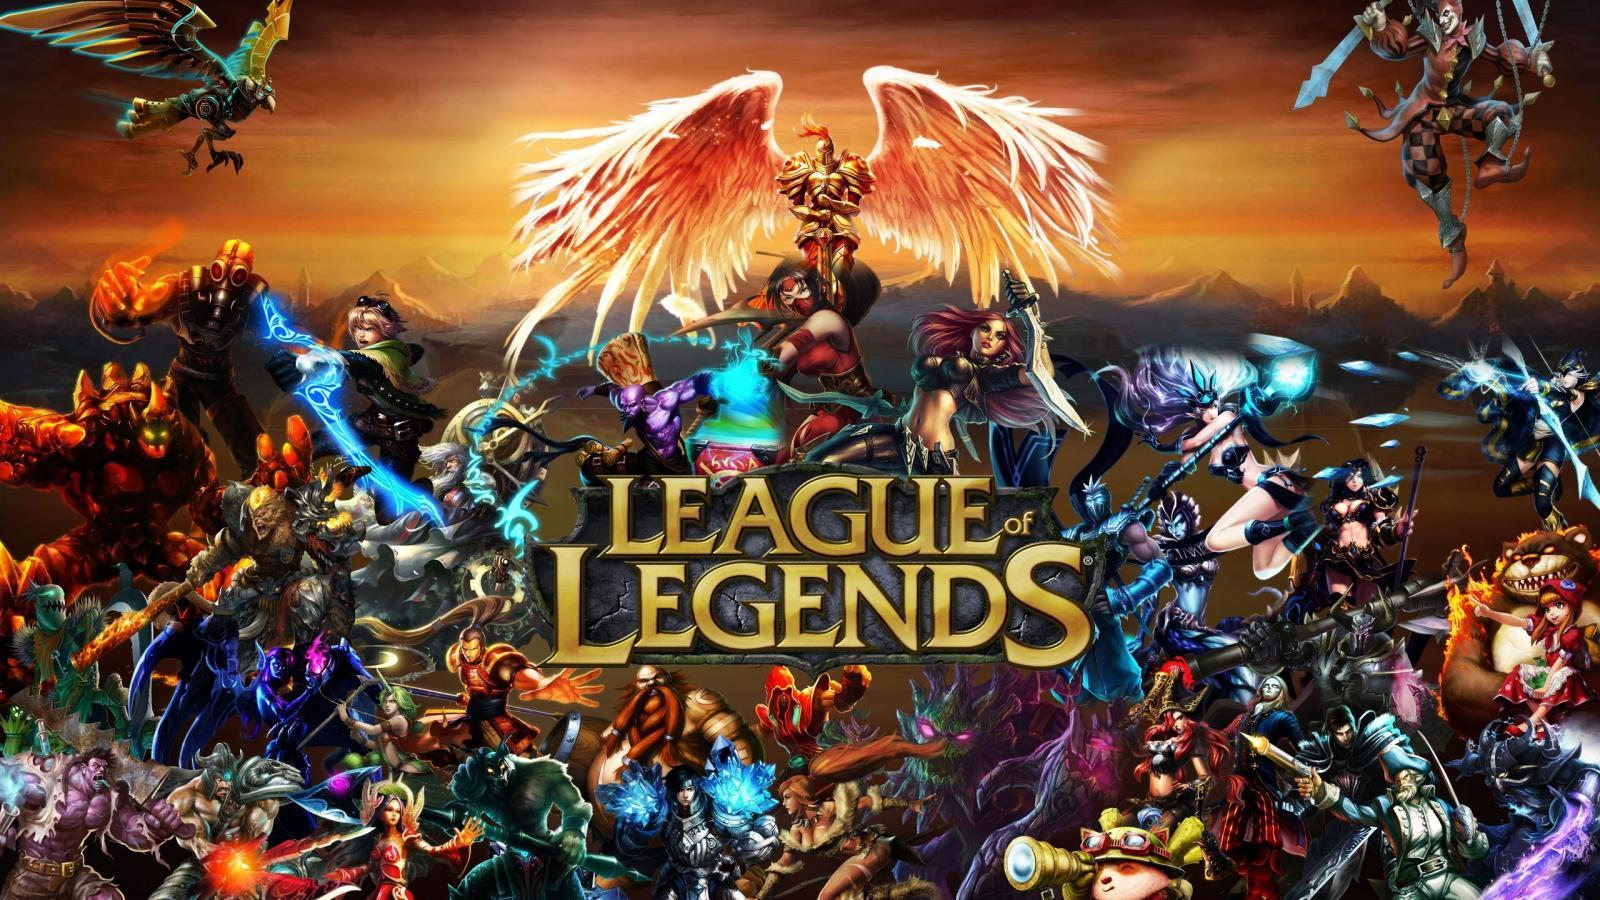 League of Legends Mobile release happening soon?